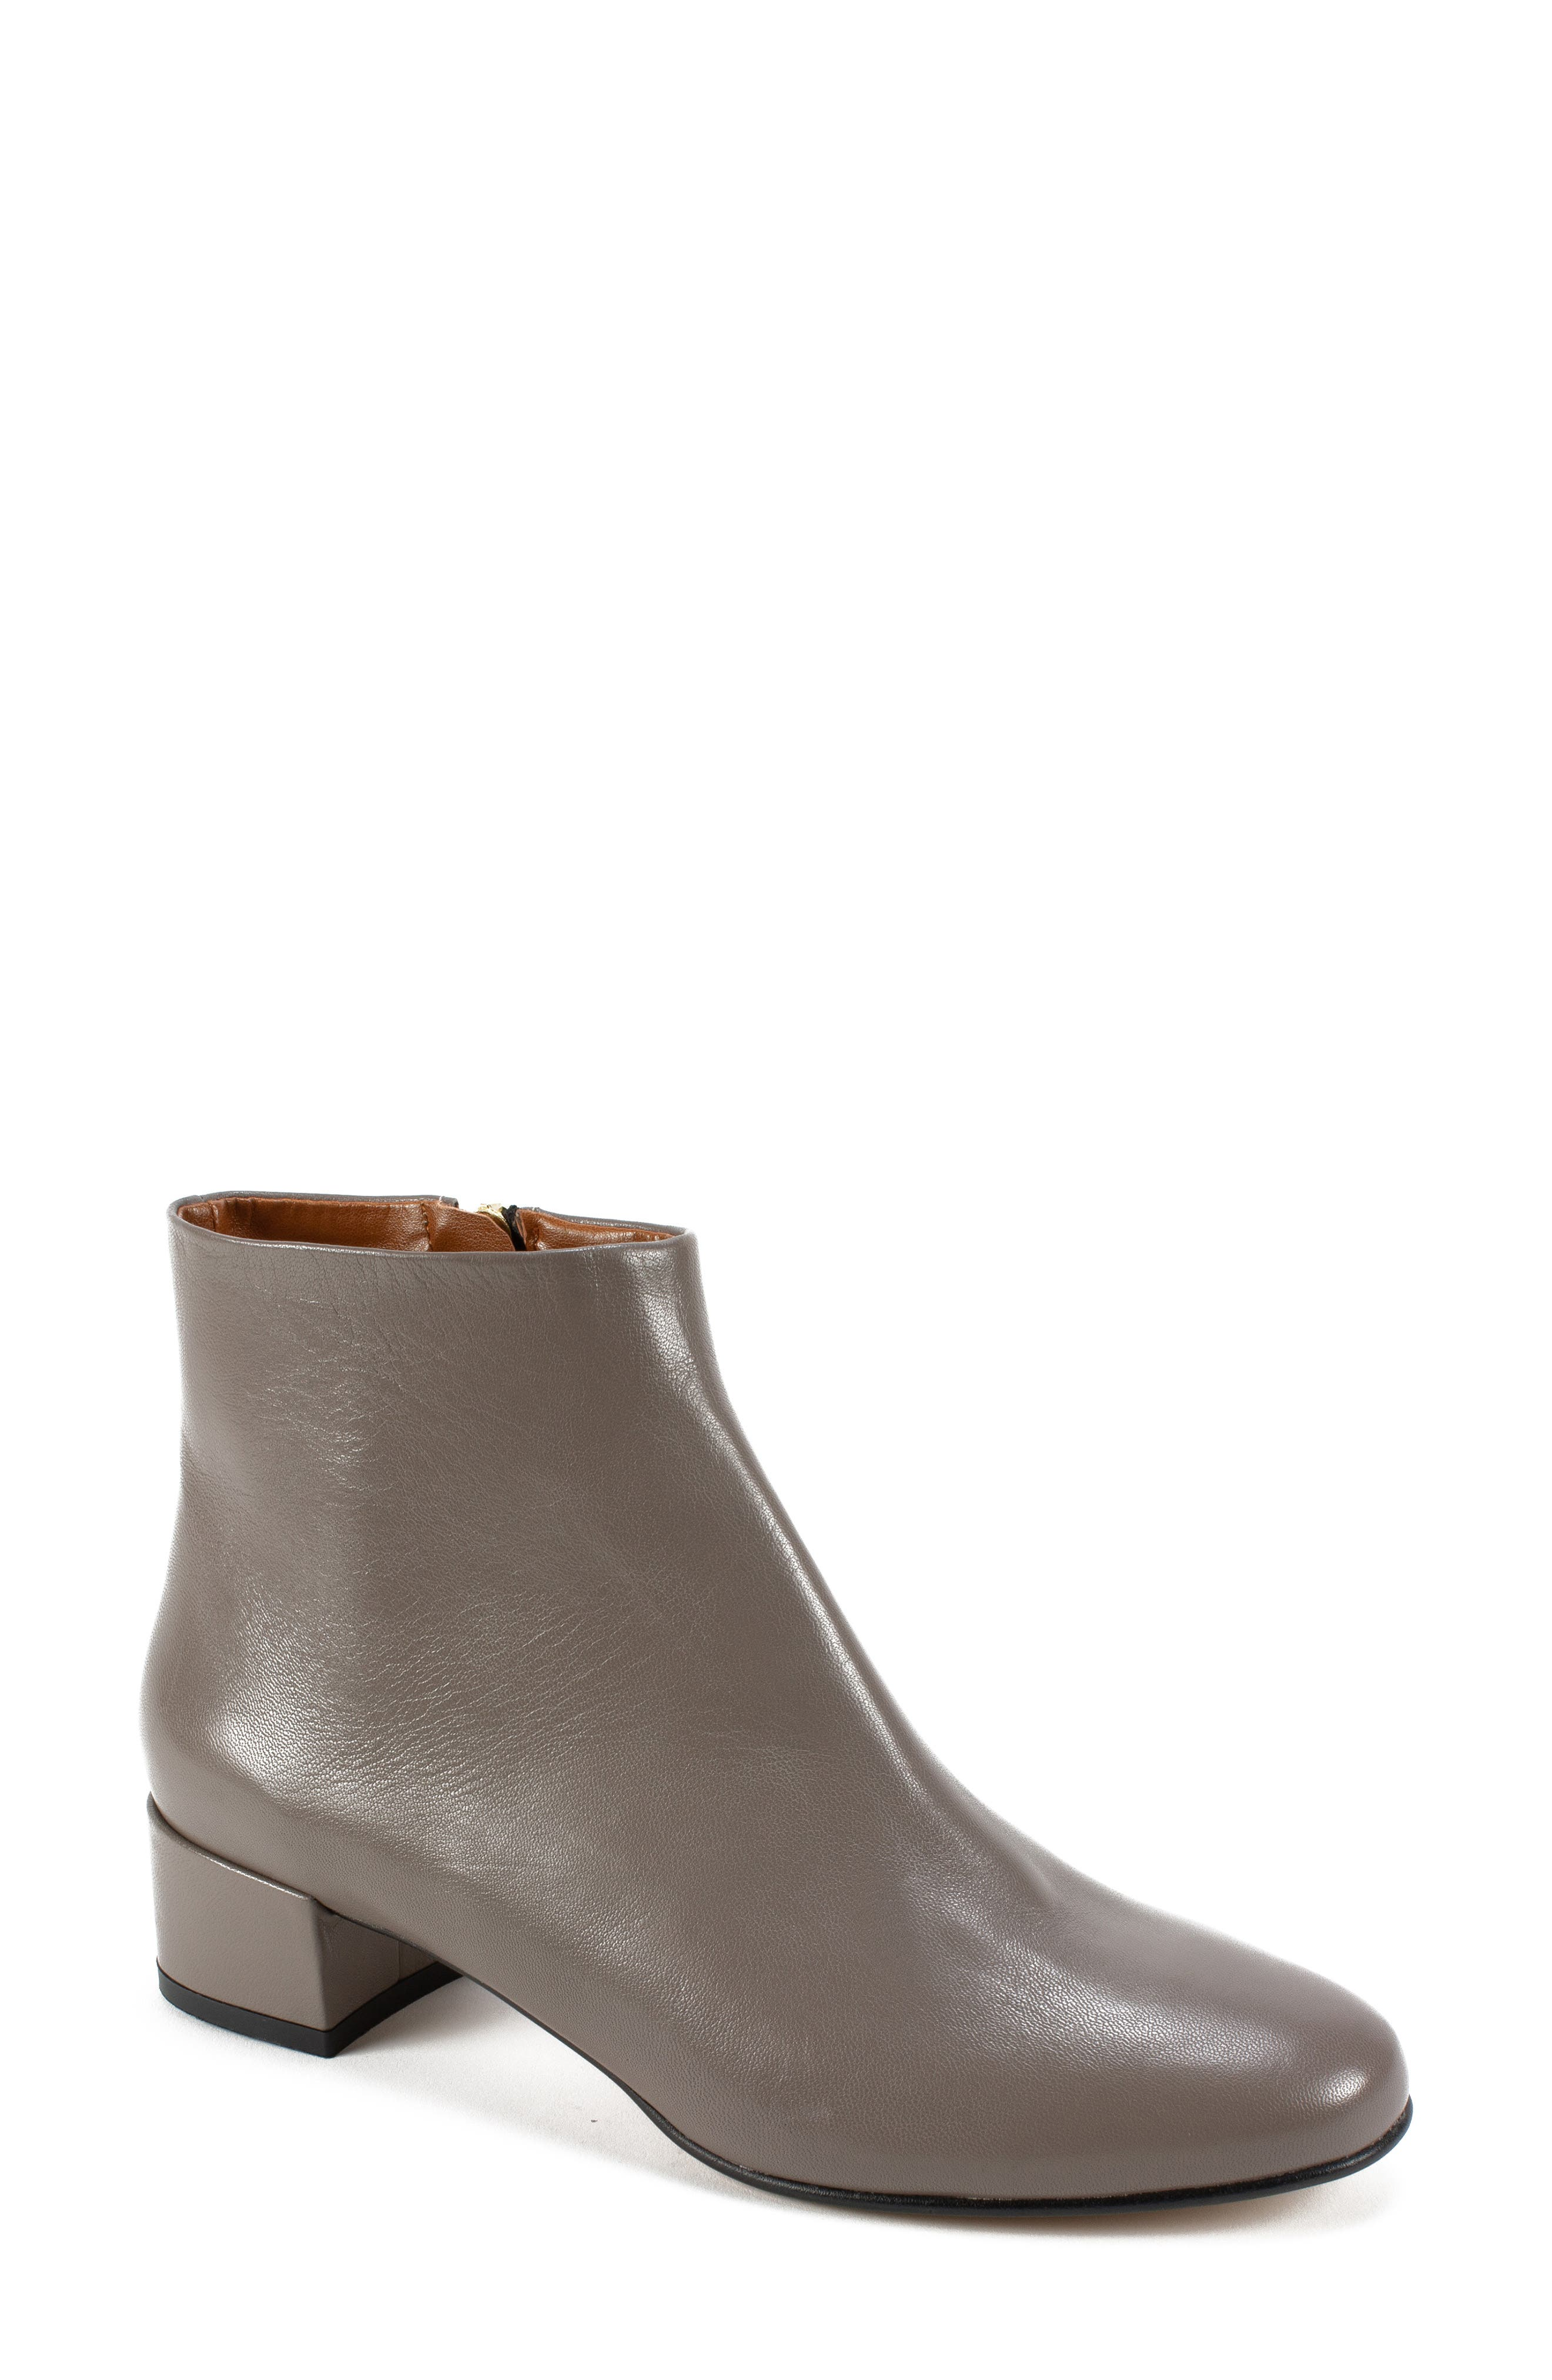 Summit By White Mountain Jordie Block Heel Bootie Beige